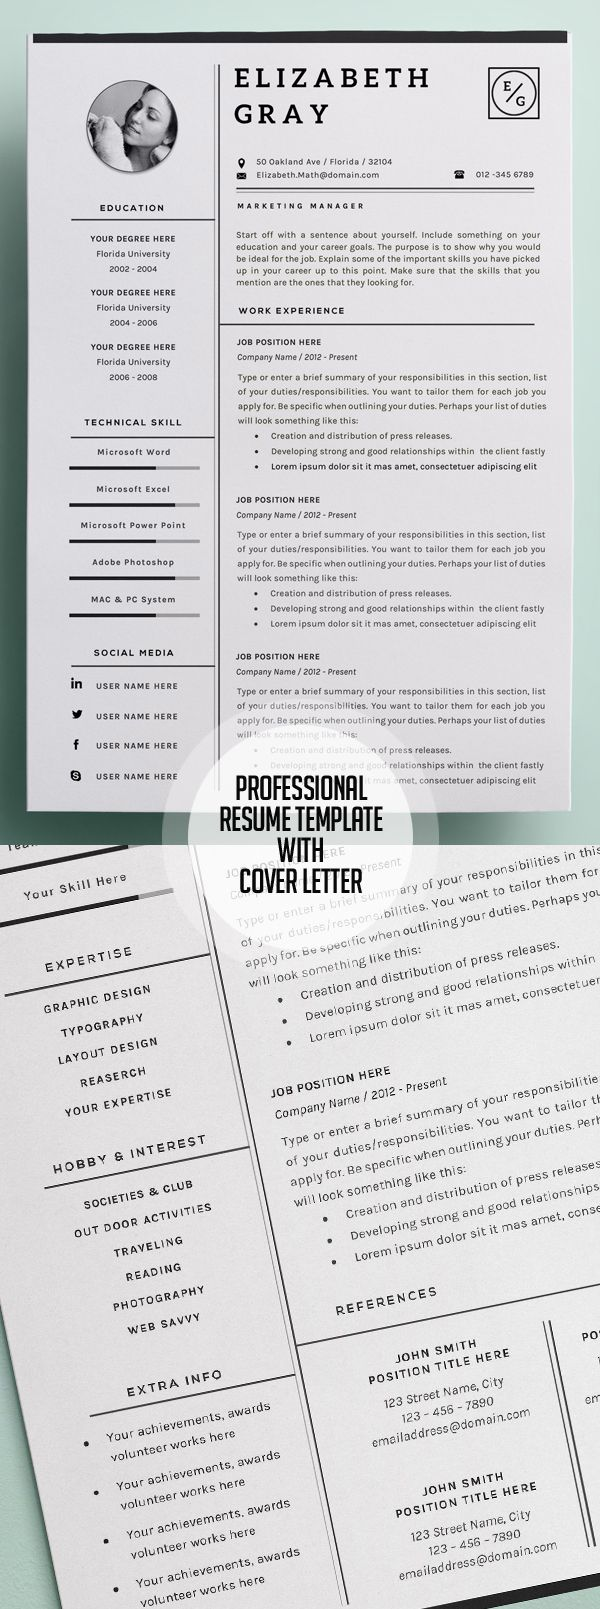 Opposenewapstandardsus  Pleasing  Resume Ideas On Pinterest  Resume Resume Templates And  With Engaging Professional And Modern Resume Template With Page Cover Cvtemplate With Easy On The Eye What Do I Put On My Resume Also Post Resume On Craigslist In Addition Interesting Resume And Sample Operations Manager Resume As Well As Real Estate Attorney Resume Additionally Resume Writing Books From Pinterestcom With Opposenewapstandardsus  Engaging  Resume Ideas On Pinterest  Resume Resume Templates And  With Easy On The Eye Professional And Modern Resume Template With Page Cover Cvtemplate And Pleasing What Do I Put On My Resume Also Post Resume On Craigslist In Addition Interesting Resume From Pinterestcom